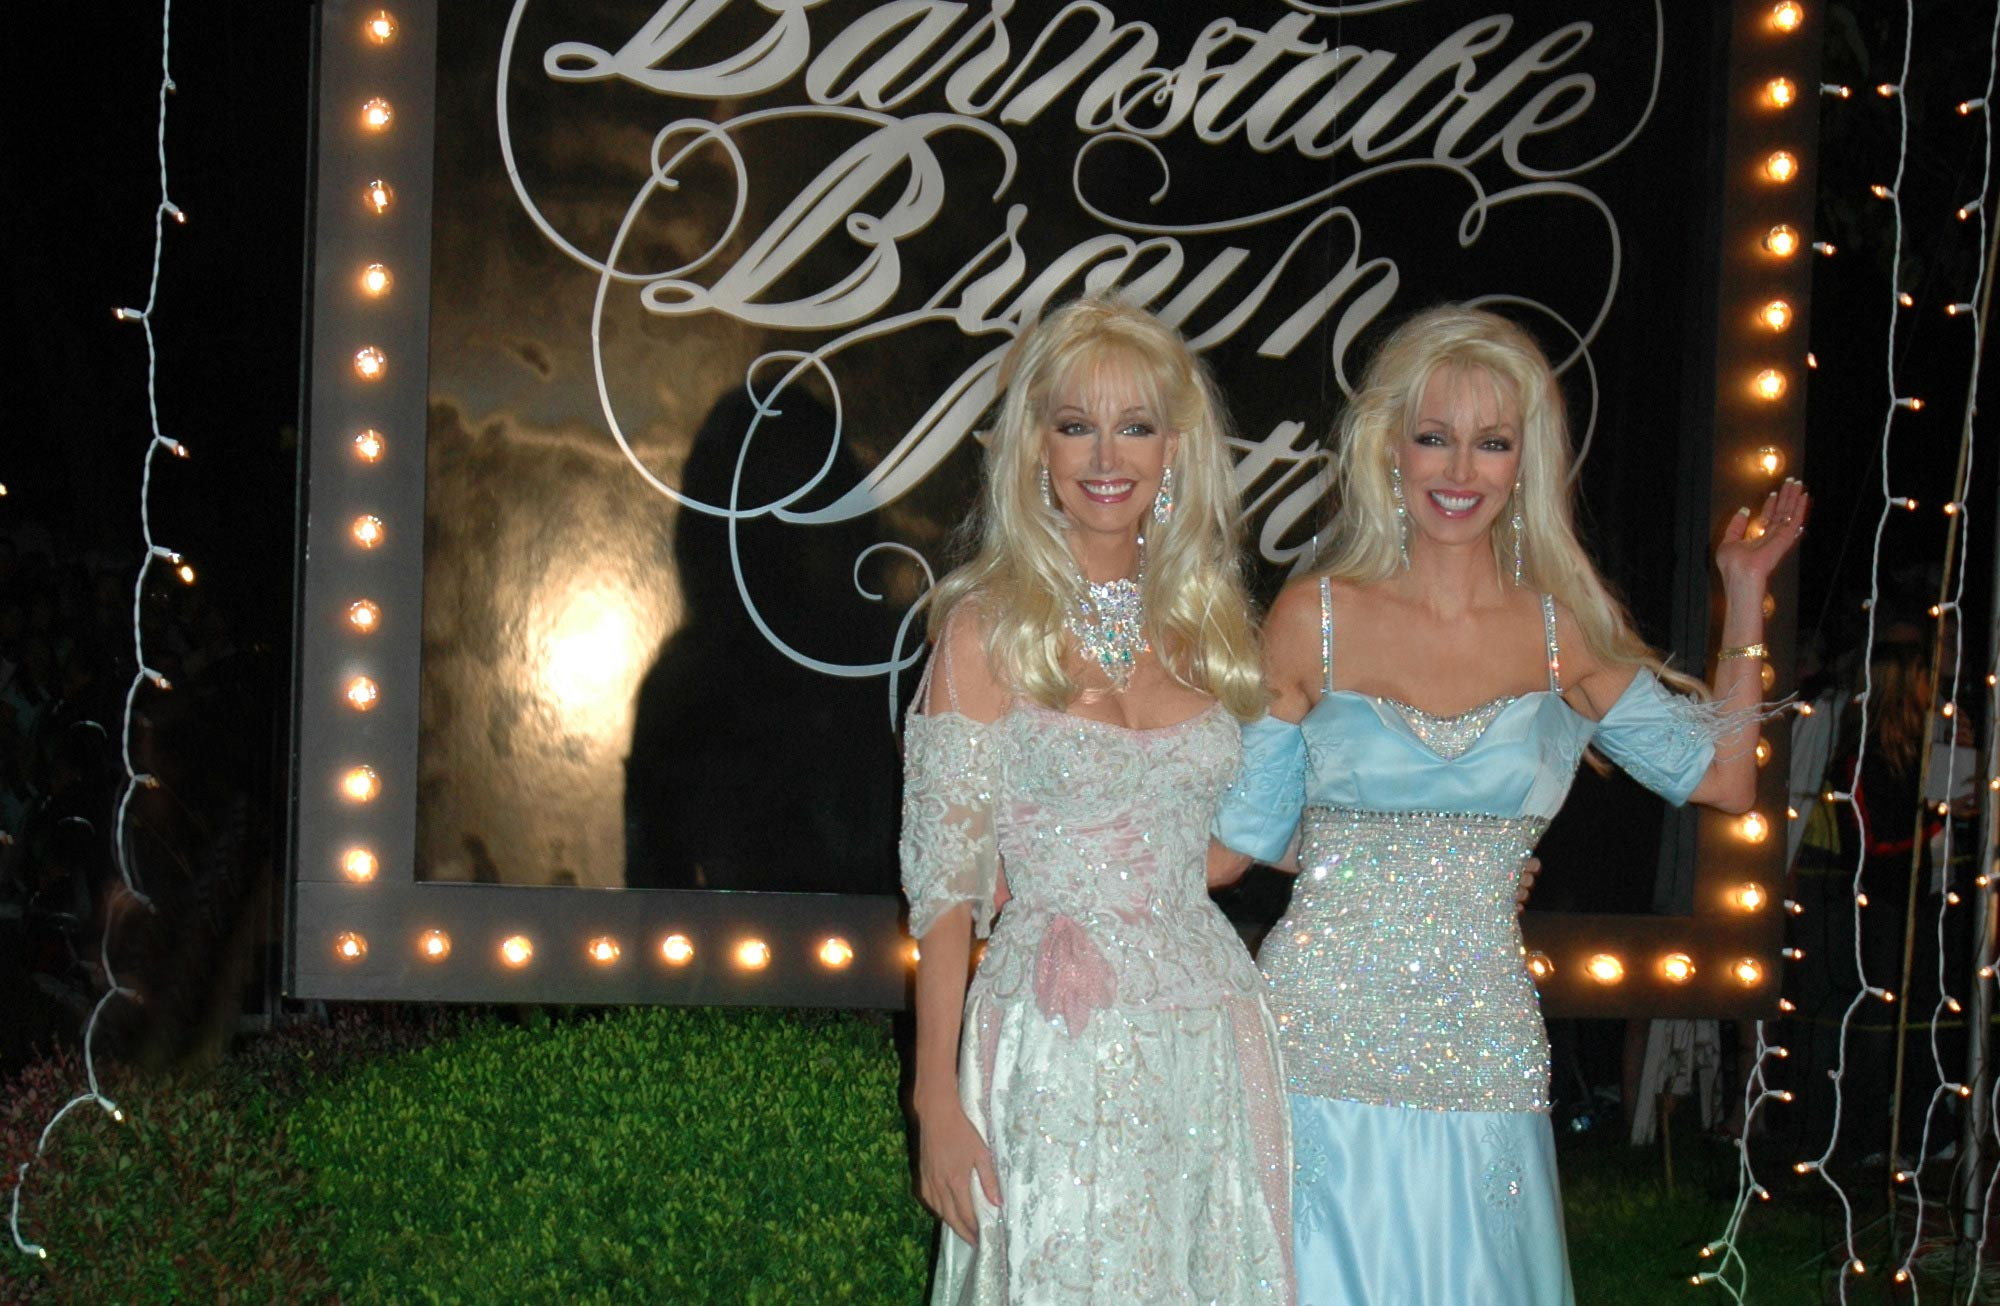 Patricia Barnstable-Brown and her twin sister, Priscilla—identical middle-aged white women with blonde hair—stand in front of a lit sign reading Barnstable Brown Party. Both are wearing elegant dresses.